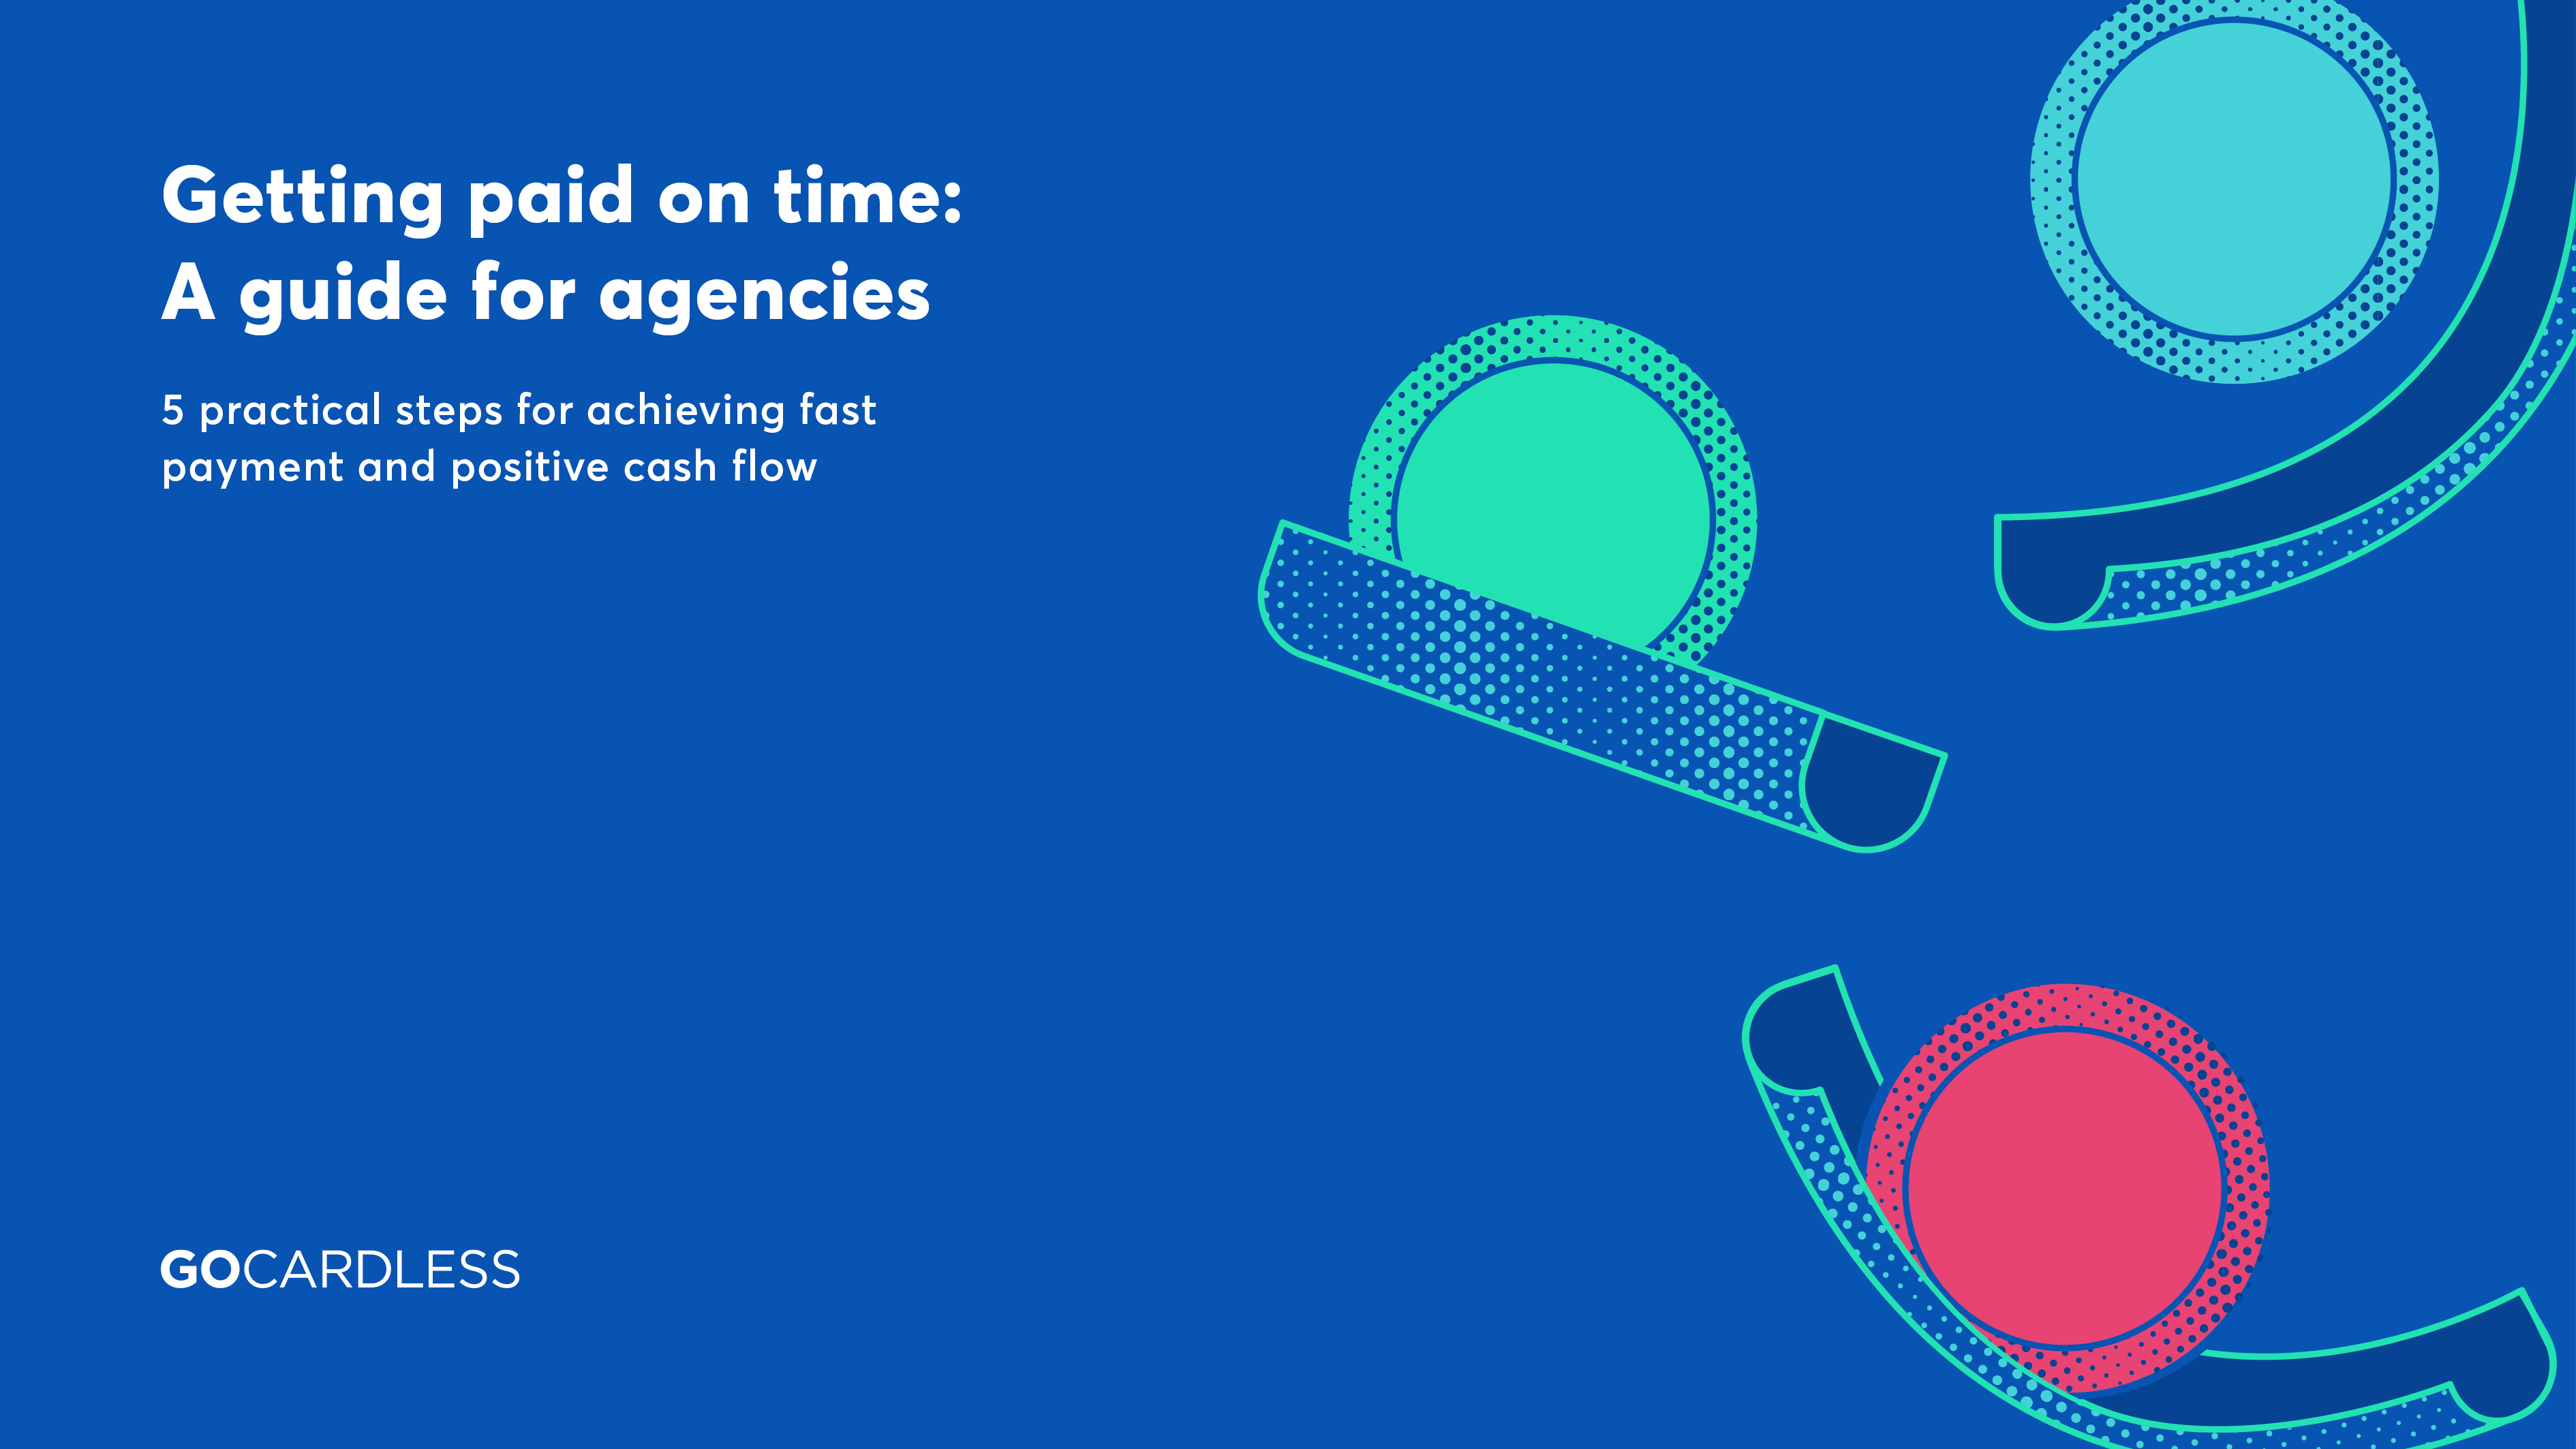 Getting paid on time - guide for agencies